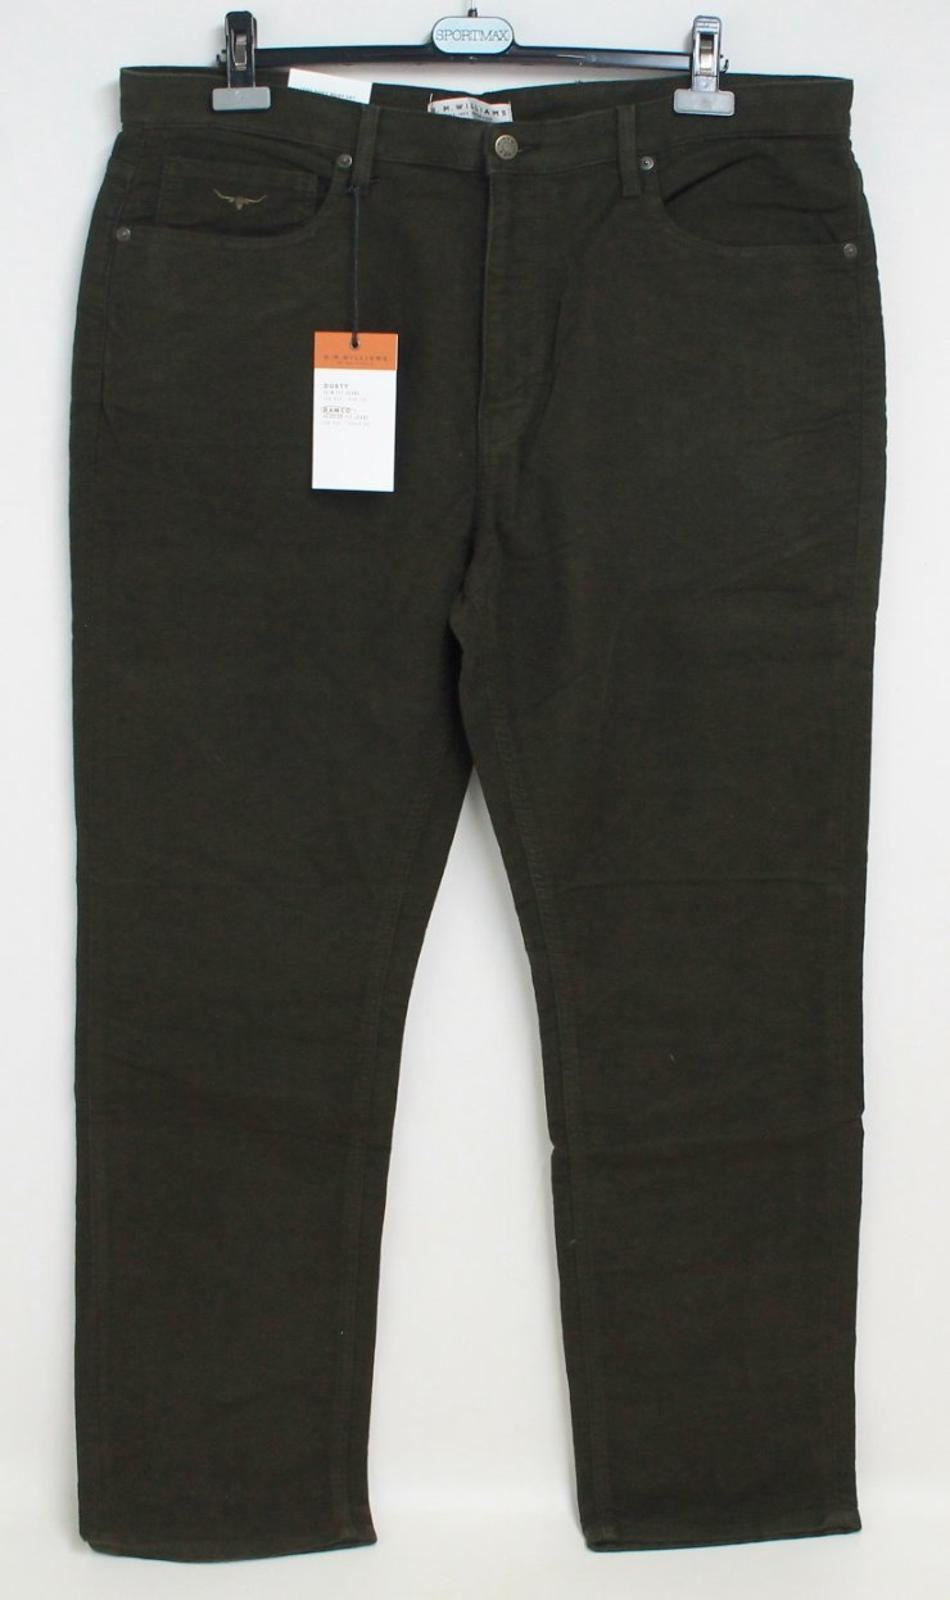 R. M. WILLIAMS Men's Green Ramco Low Rise Tapered Regular Fit Jeans W40 L32 BNWT